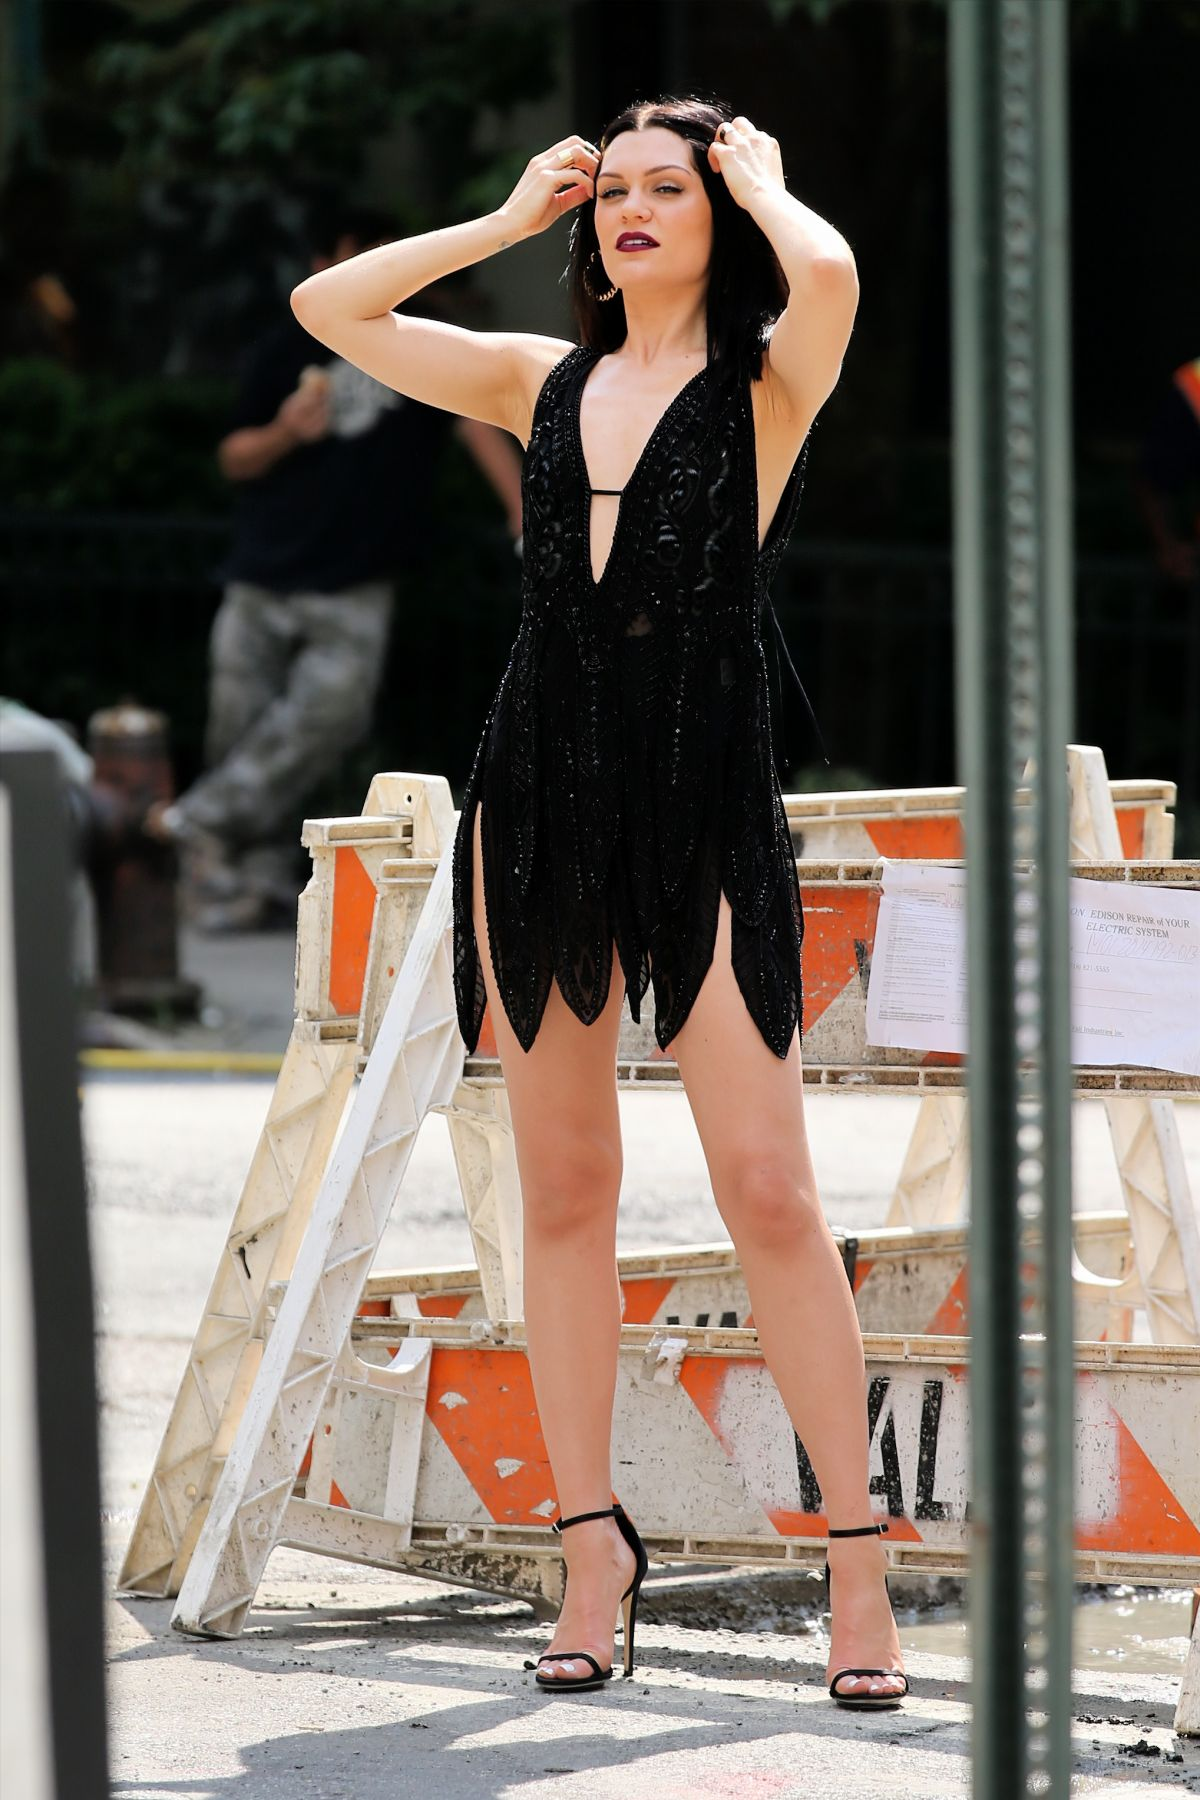 JESSIE J At A Photoshoot In New York HawtCelebs